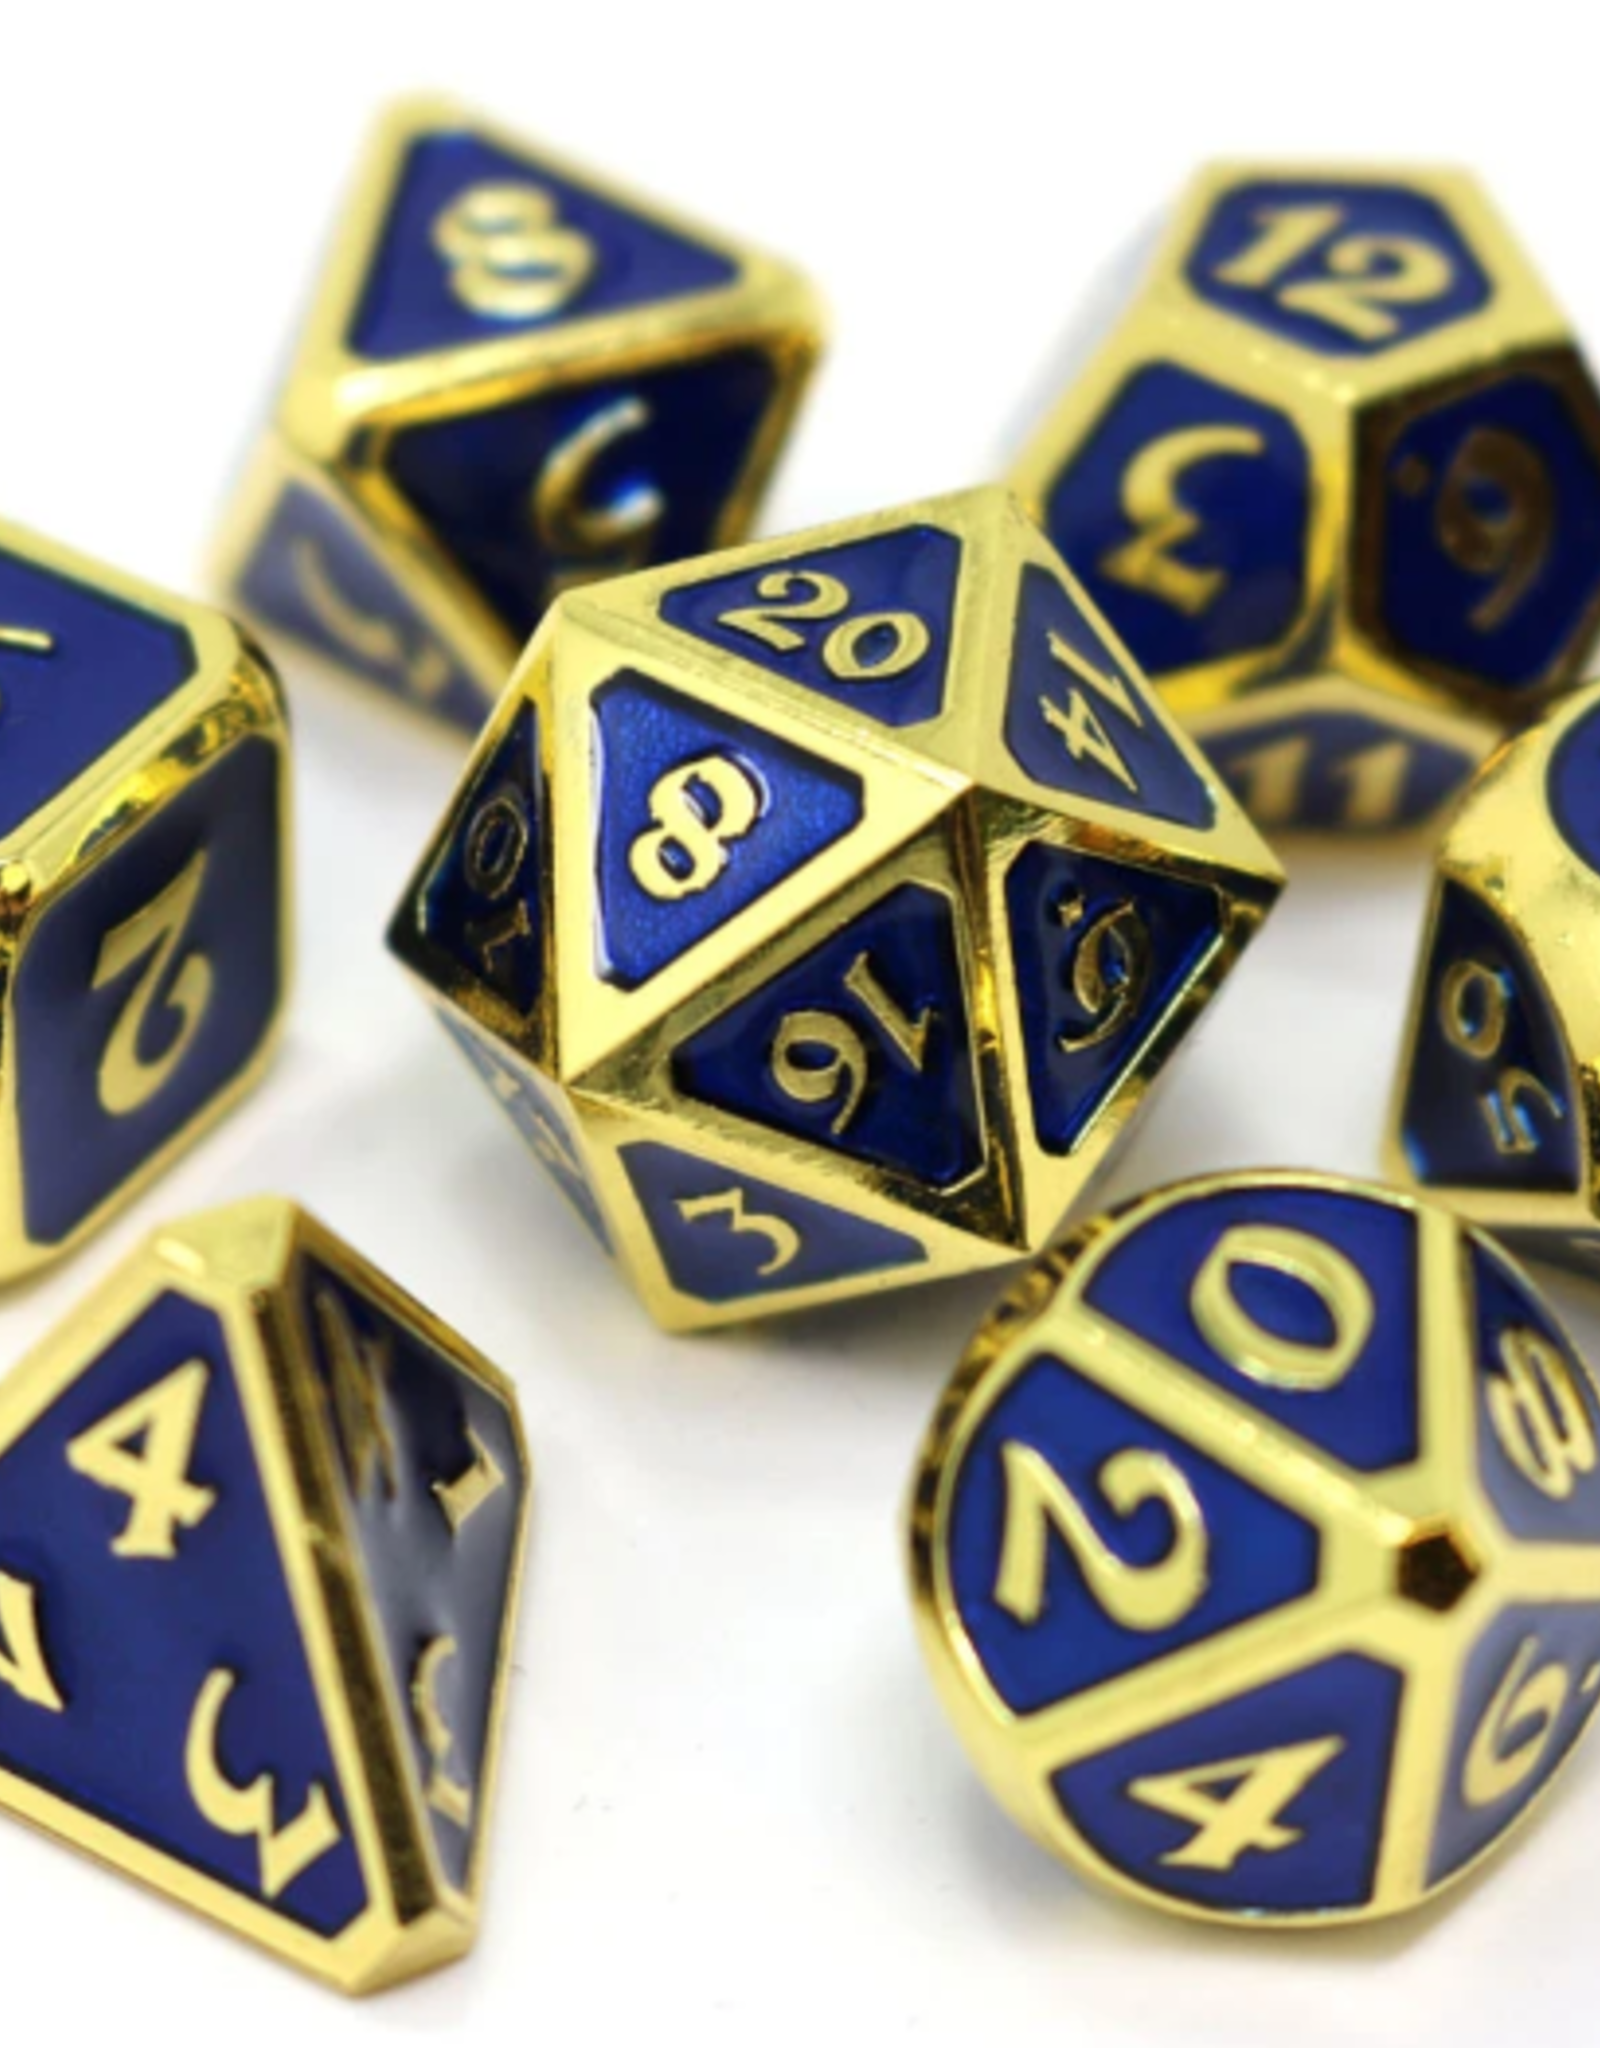 Die Hard Dice 7 Metal Dice Set Mythica Gold Sapphire